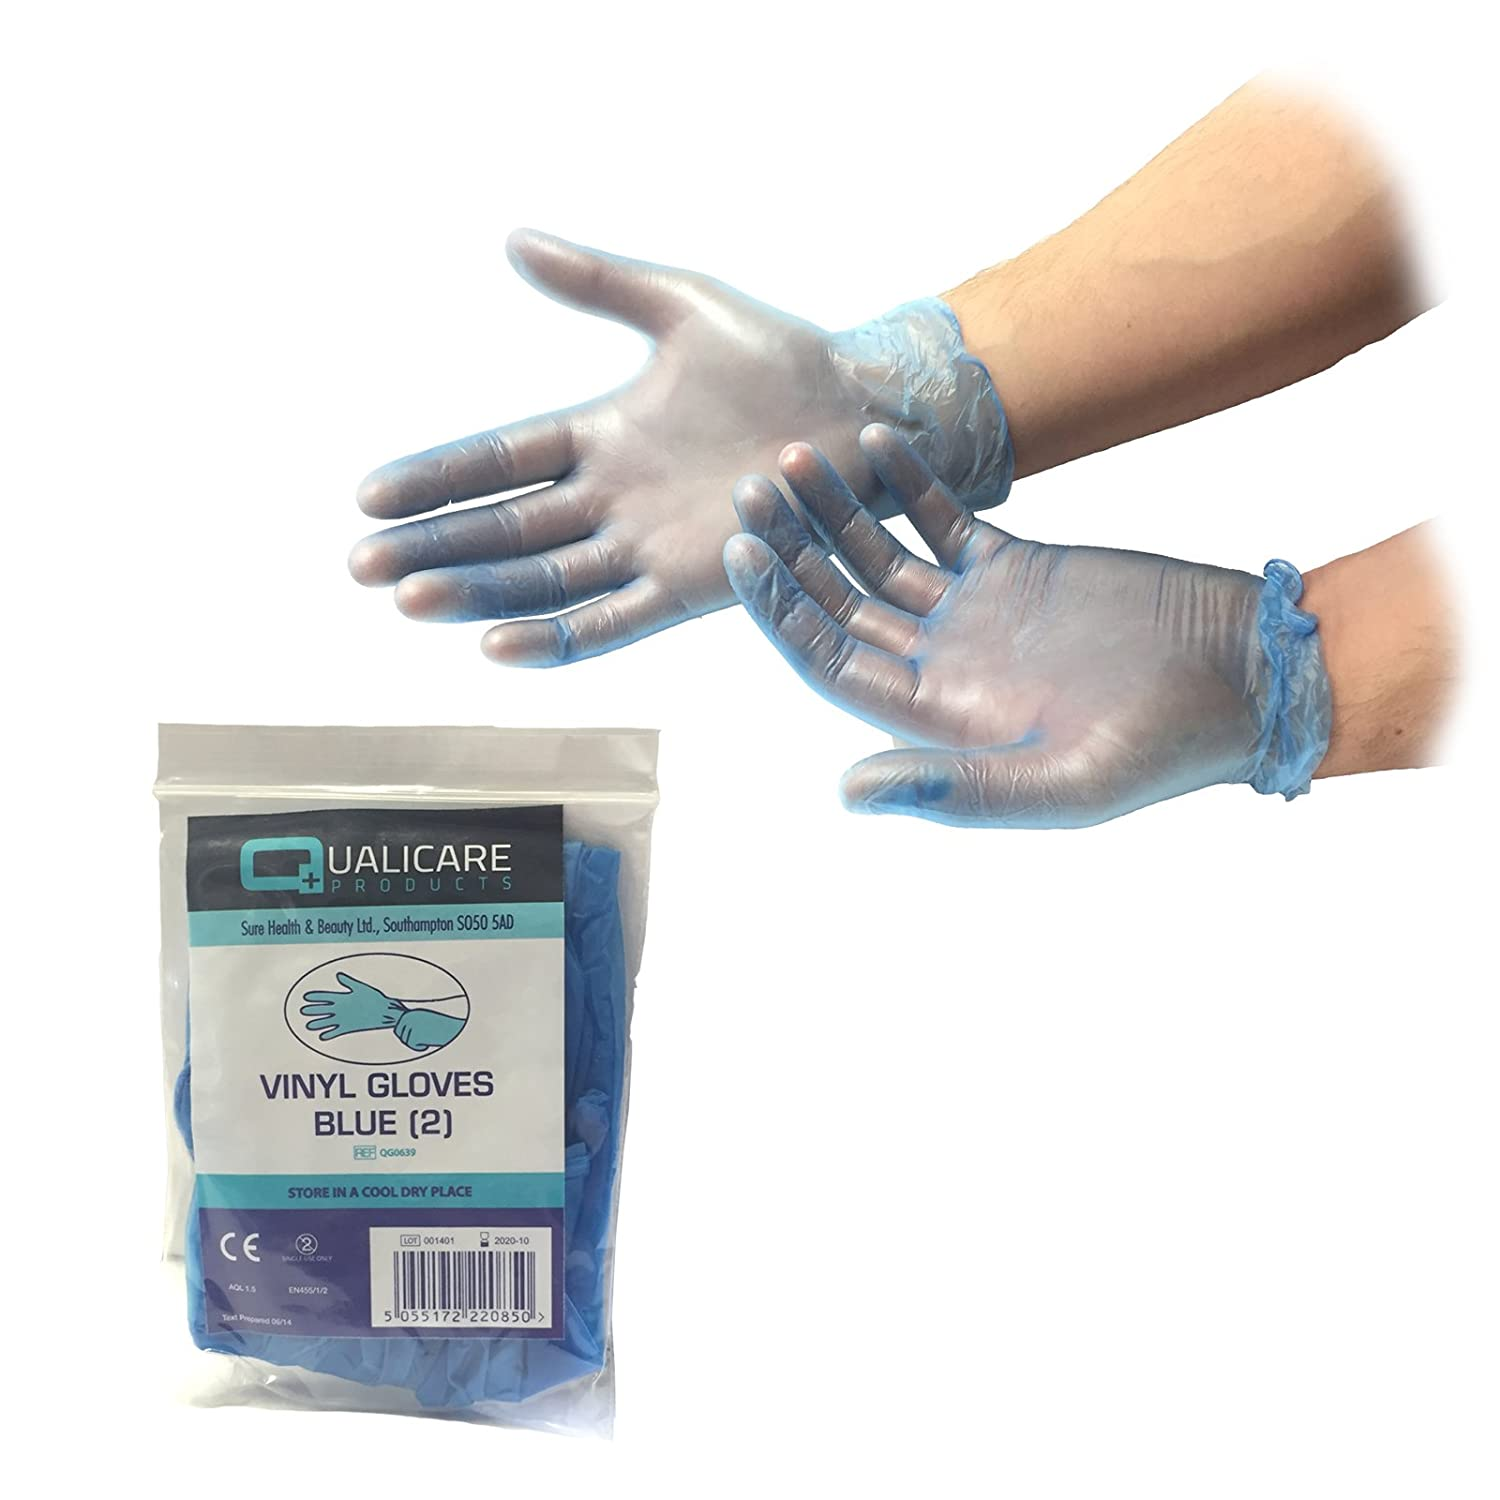 10 PAIRS OF LARGE PREMIUM DISPOSABLE POWDERED VINYL NON-STERILE CLEAR LATEX FREE FIRST AID DURABLE PROTECTIVE MULTIPURPOSE LAB TATTOO VET DENTIST MECHANIC MEDIC GLOVES